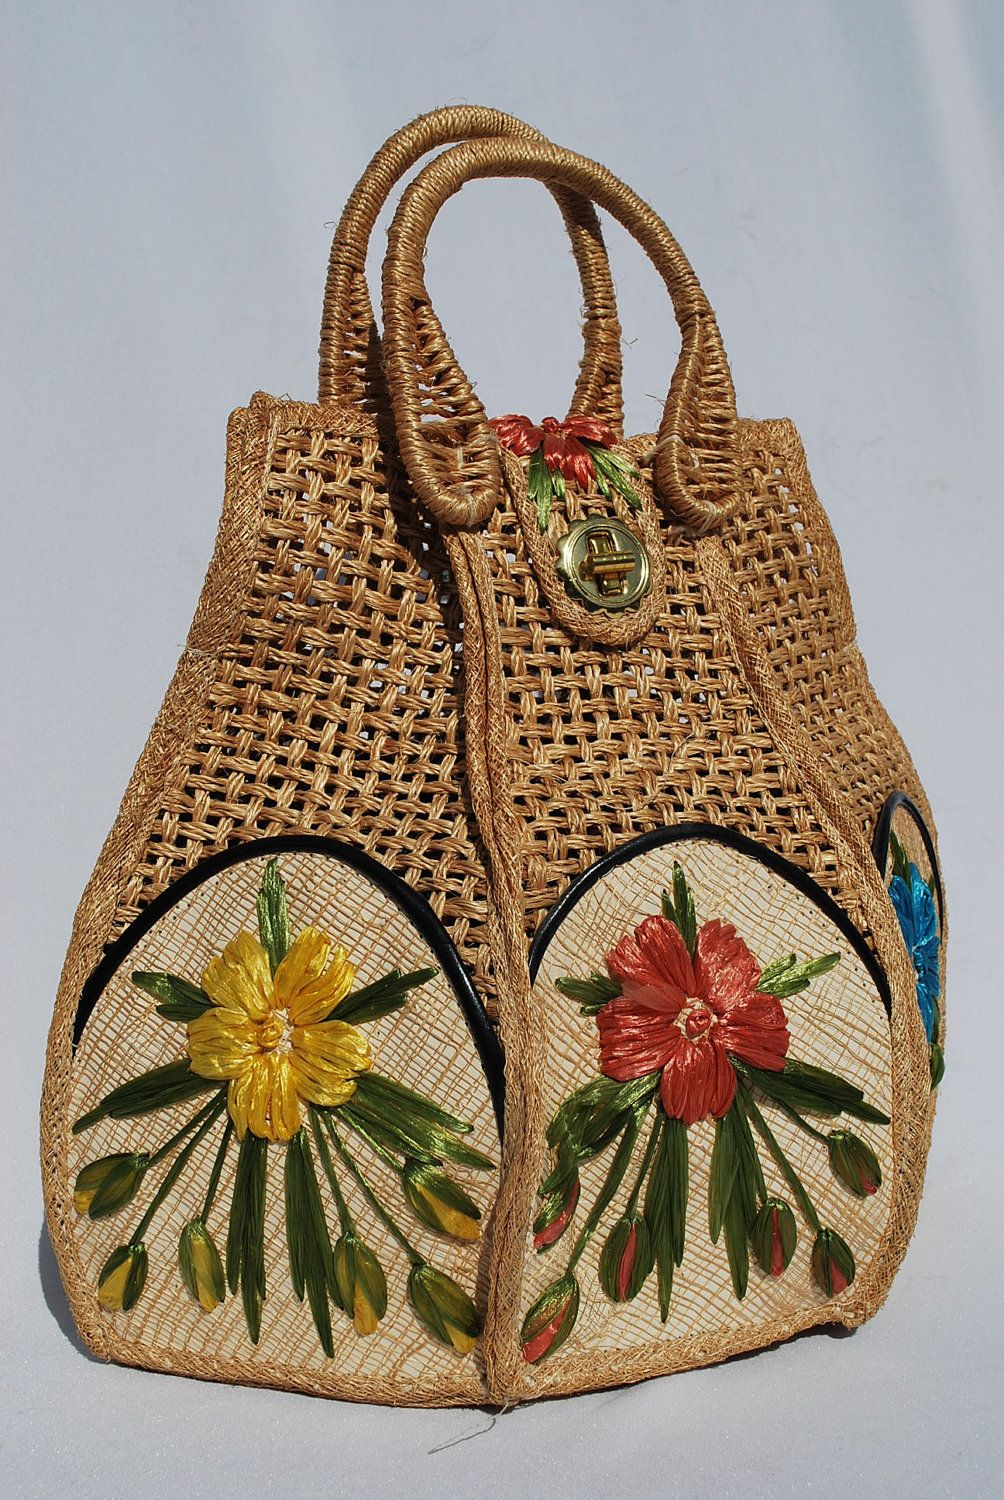 Michael kors tote bags philippines - Vintage 60 S Hand Waved Basket Purse Bucket Bag Raffia Floral Design Hand Made In Philippines By